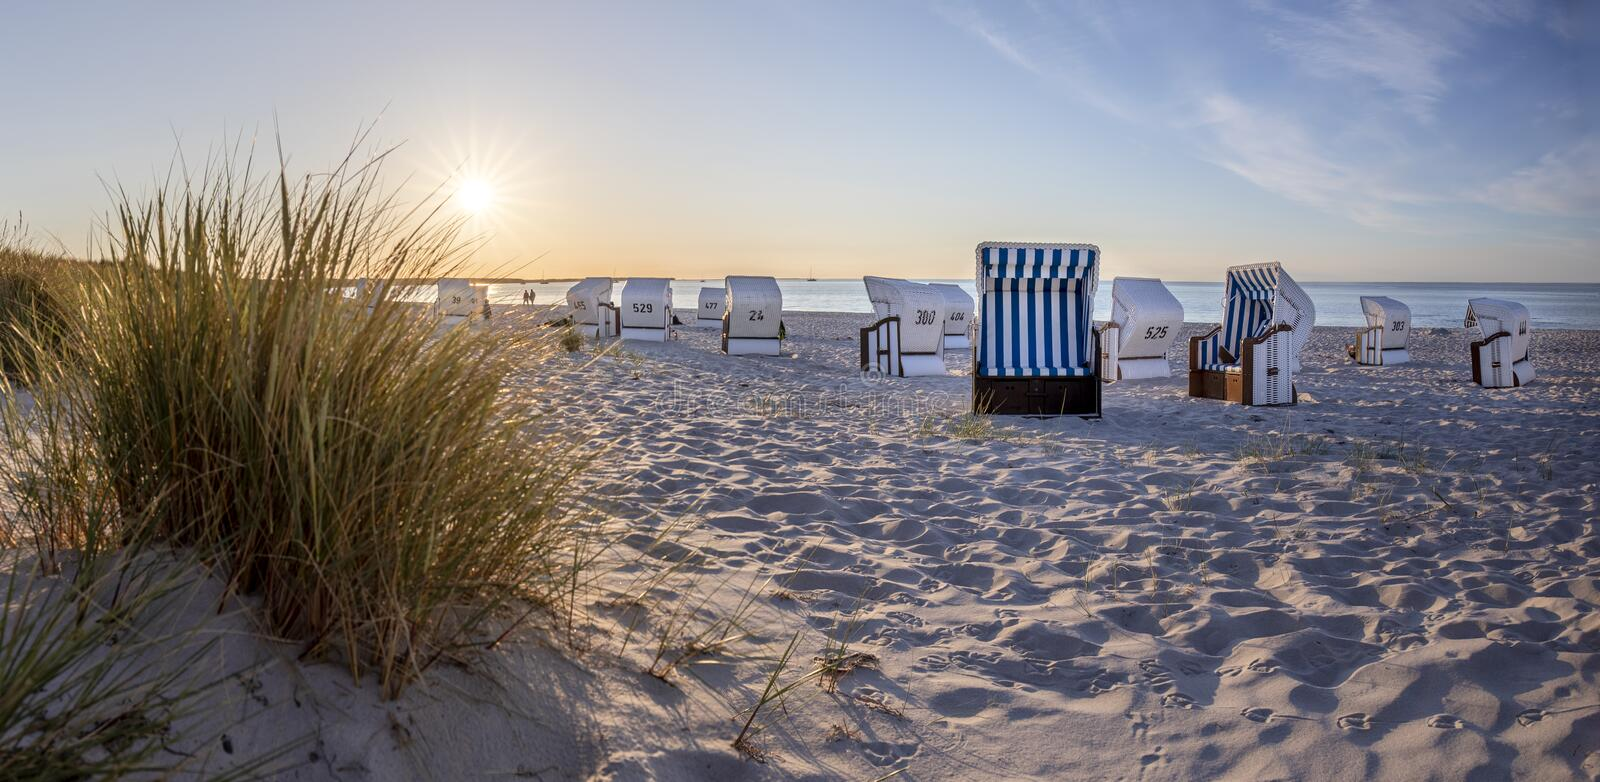 Canopied beach chairs at beach near Prerow  in evening light royalty free stock photos